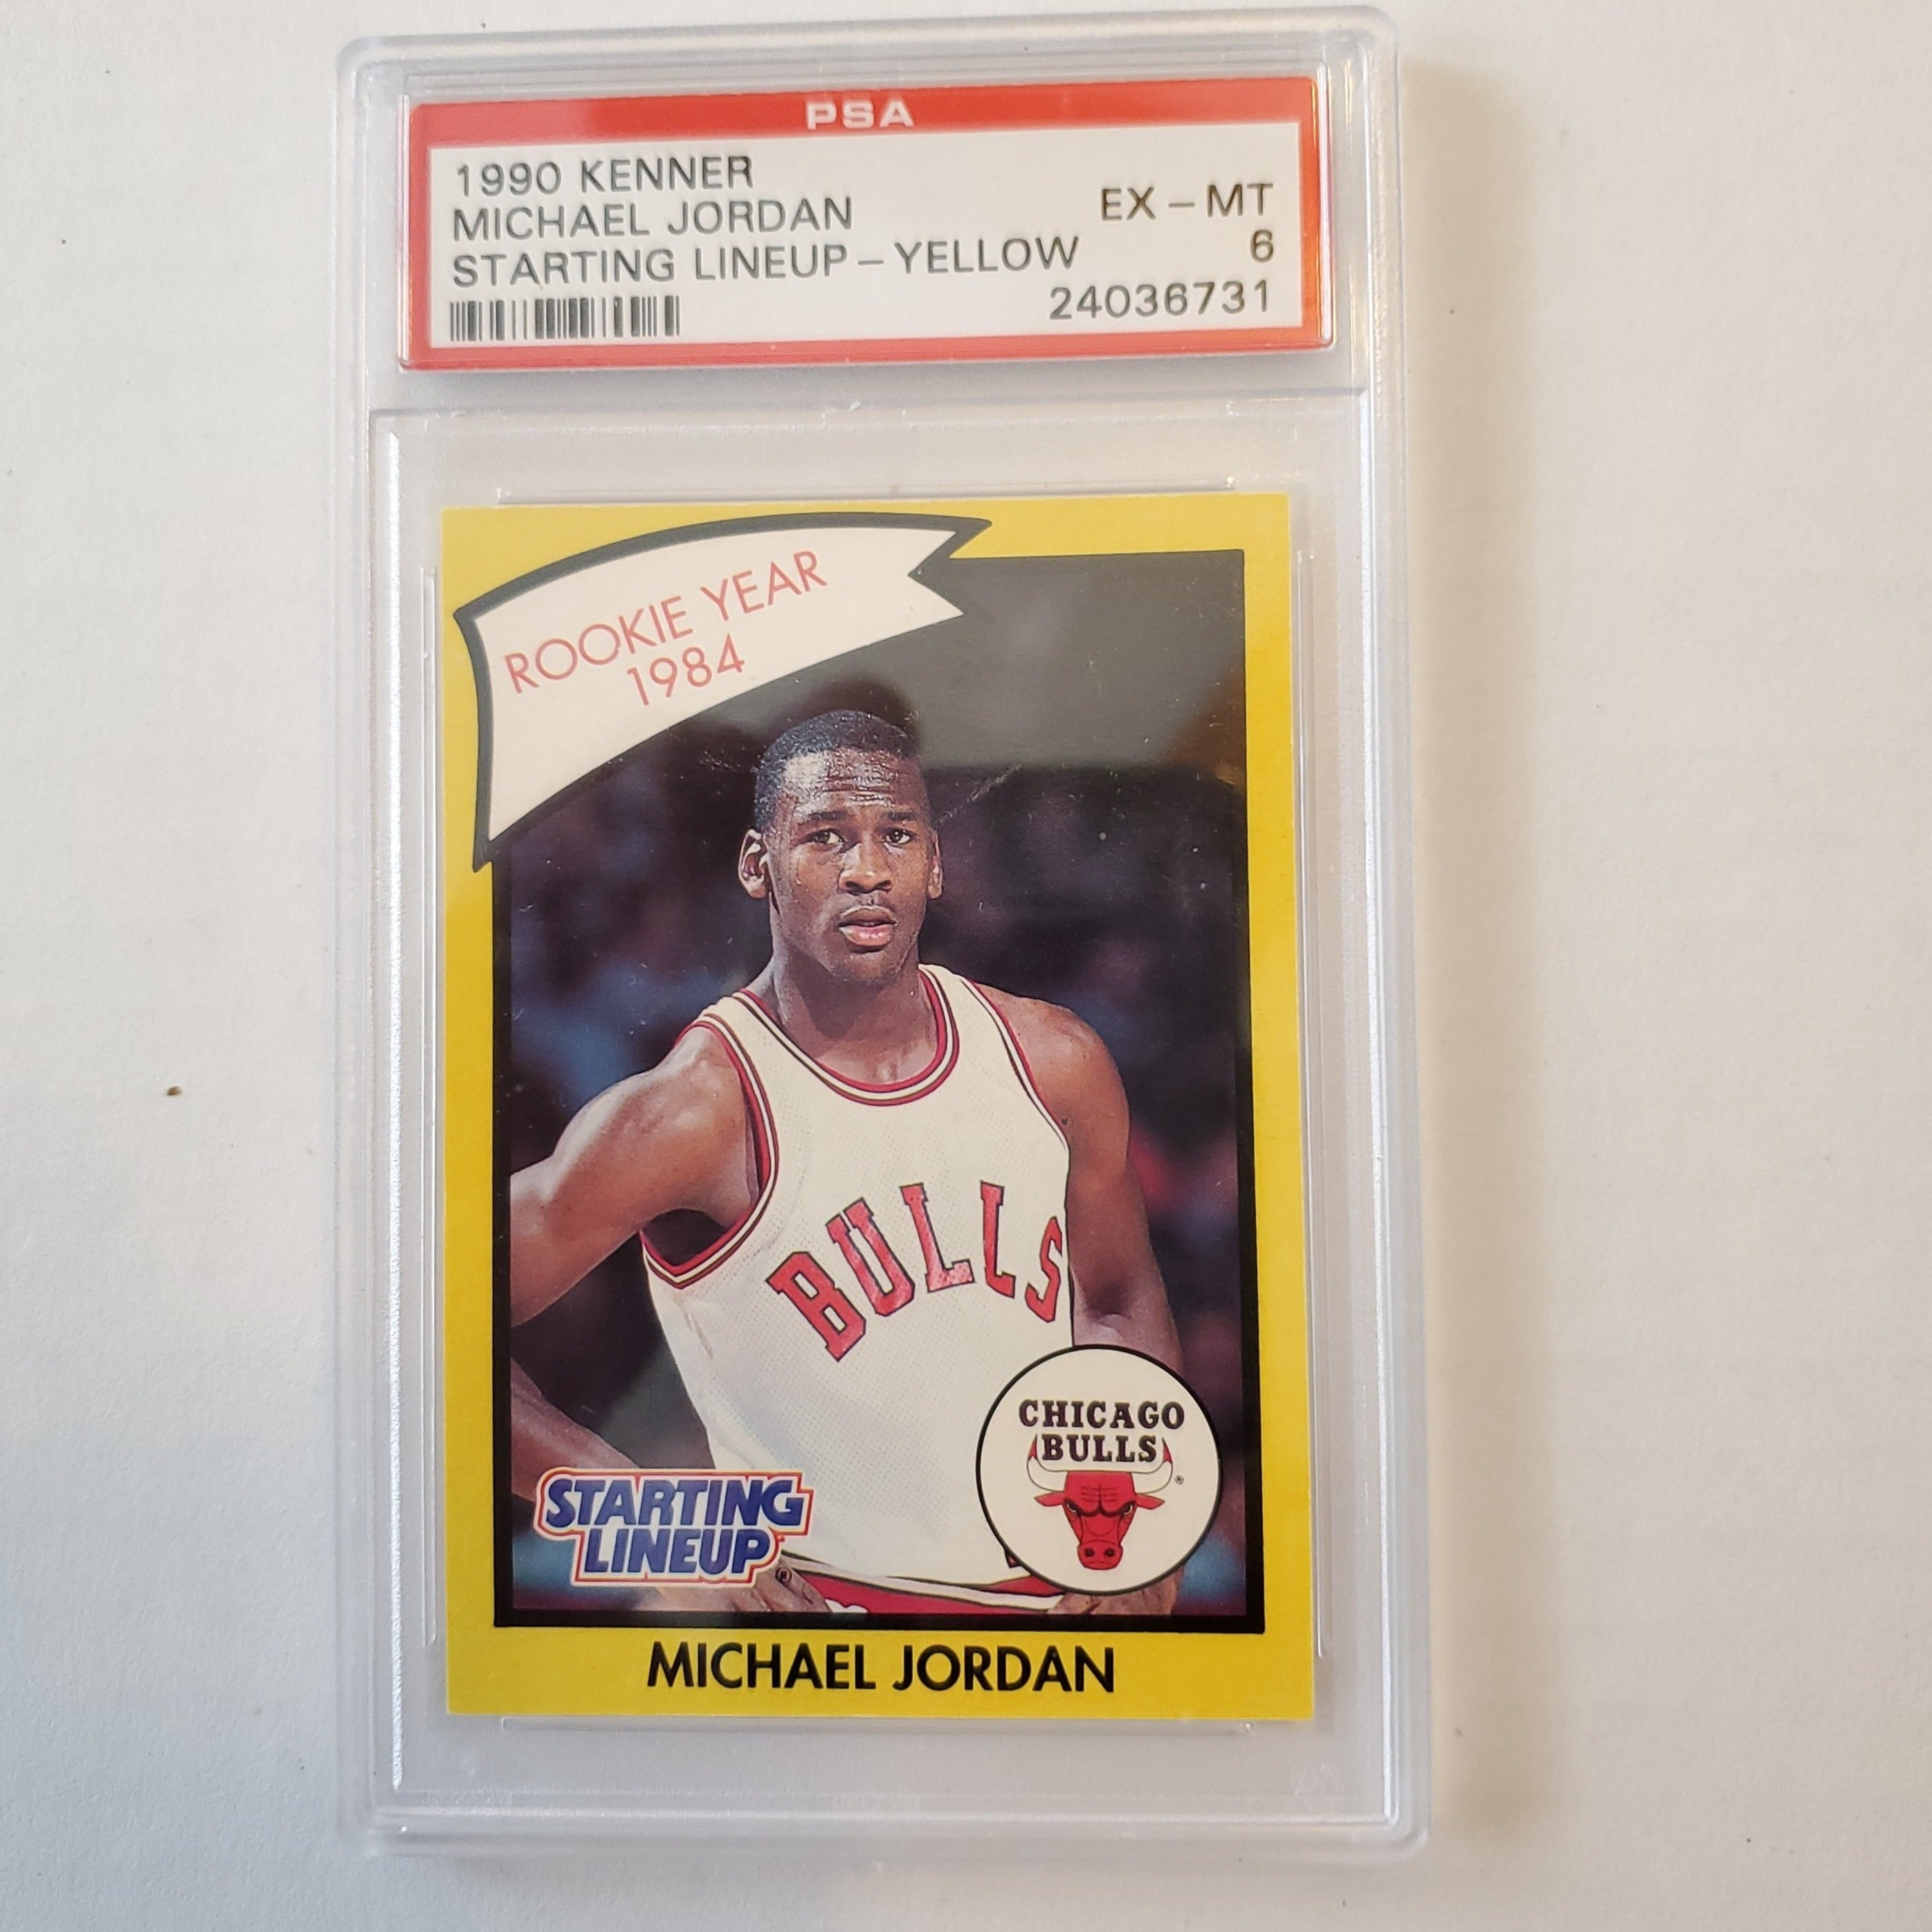 1990 Kenner starting lineup Michael Jordan card PSA6